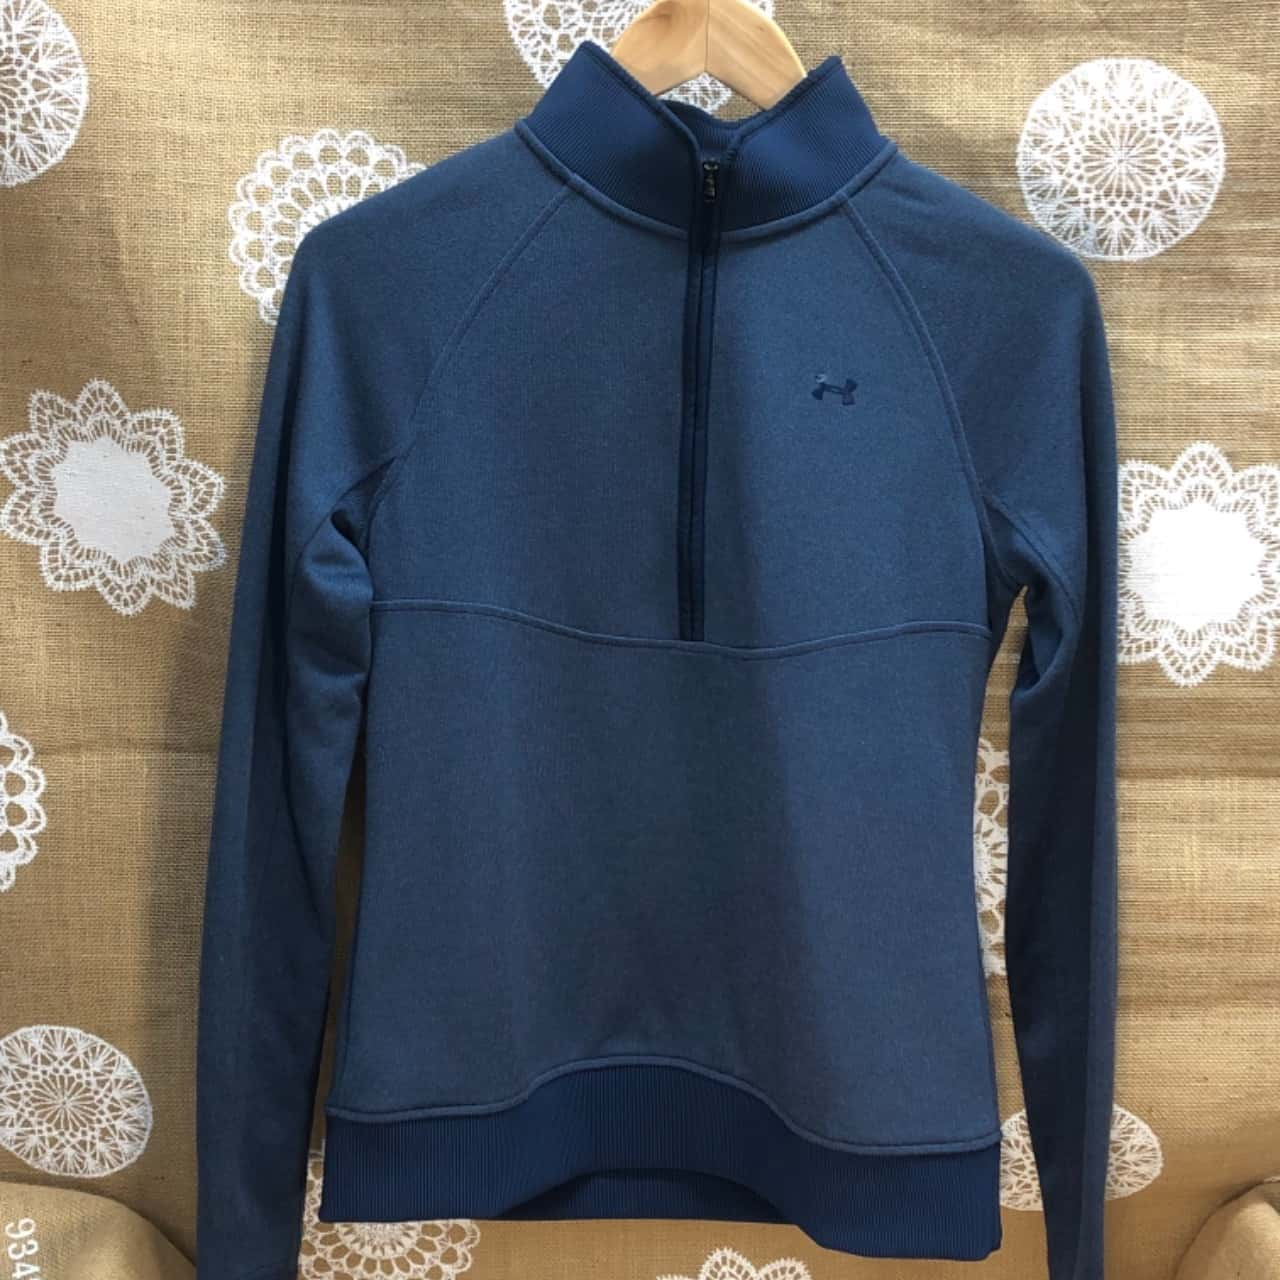 Under Armour Cold Gear Kids Size S Navy Blue Jumper